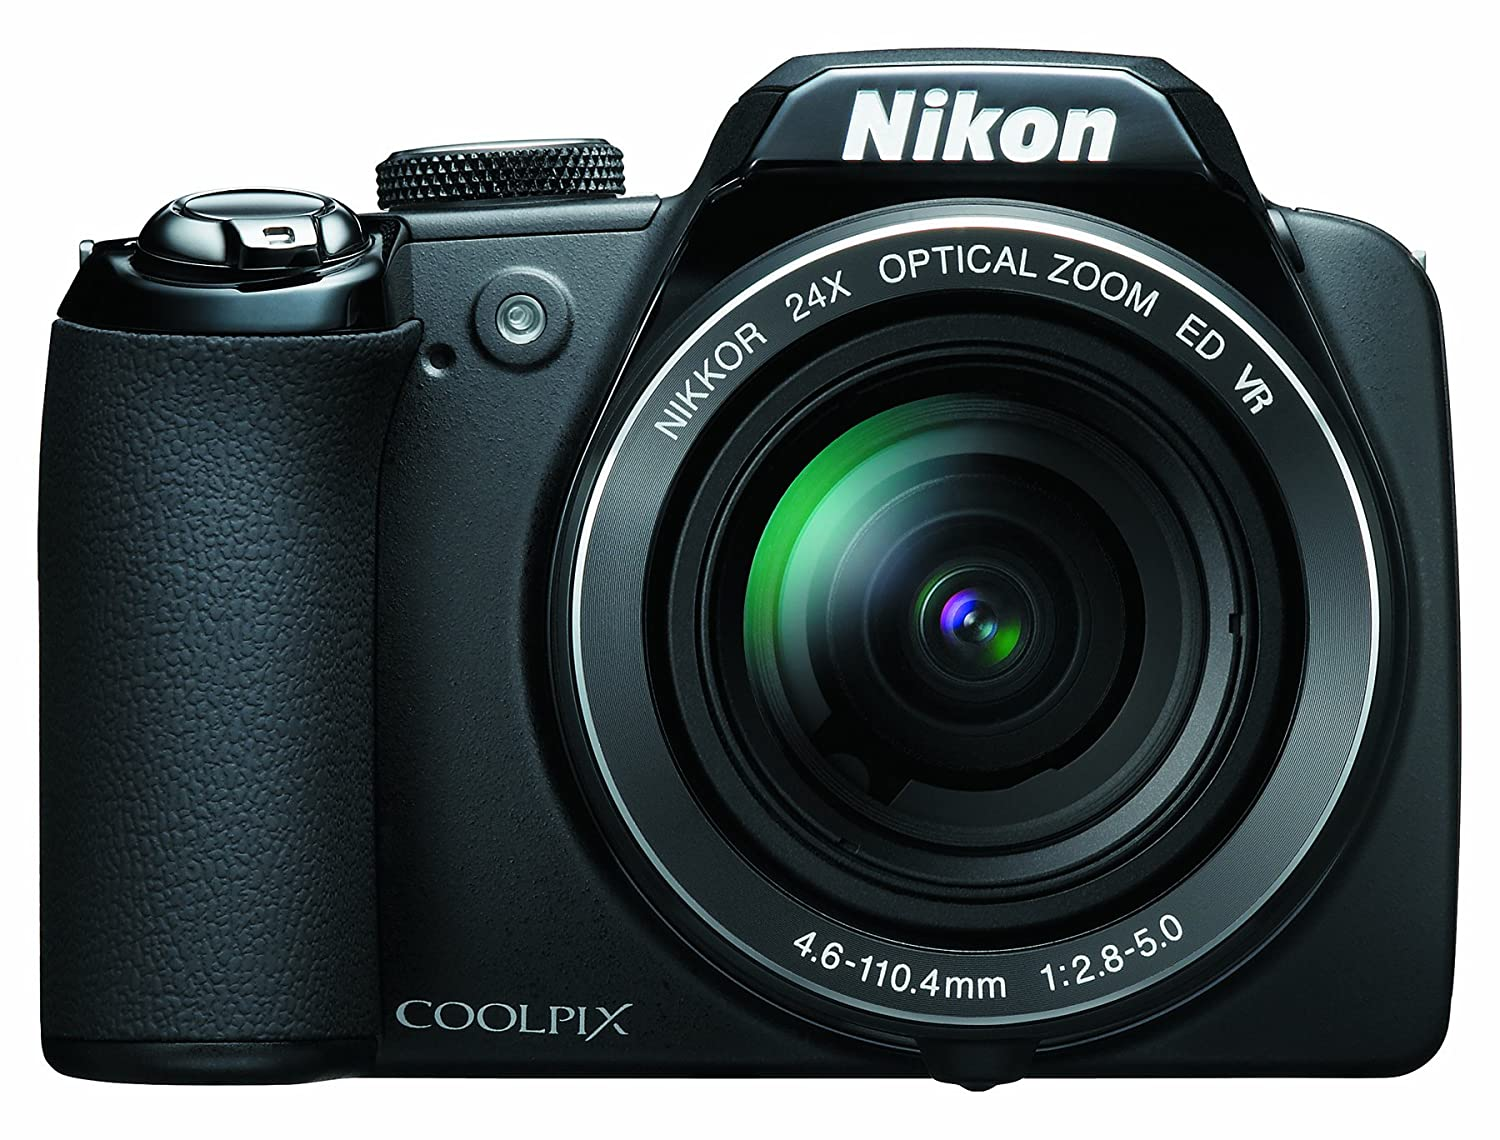 amazon com nikon coolpix p90 12 1mp digital camera with 24x wide rh amazon com camera nikon d90 manual em portugues manual nikon d90 em portugues pdf